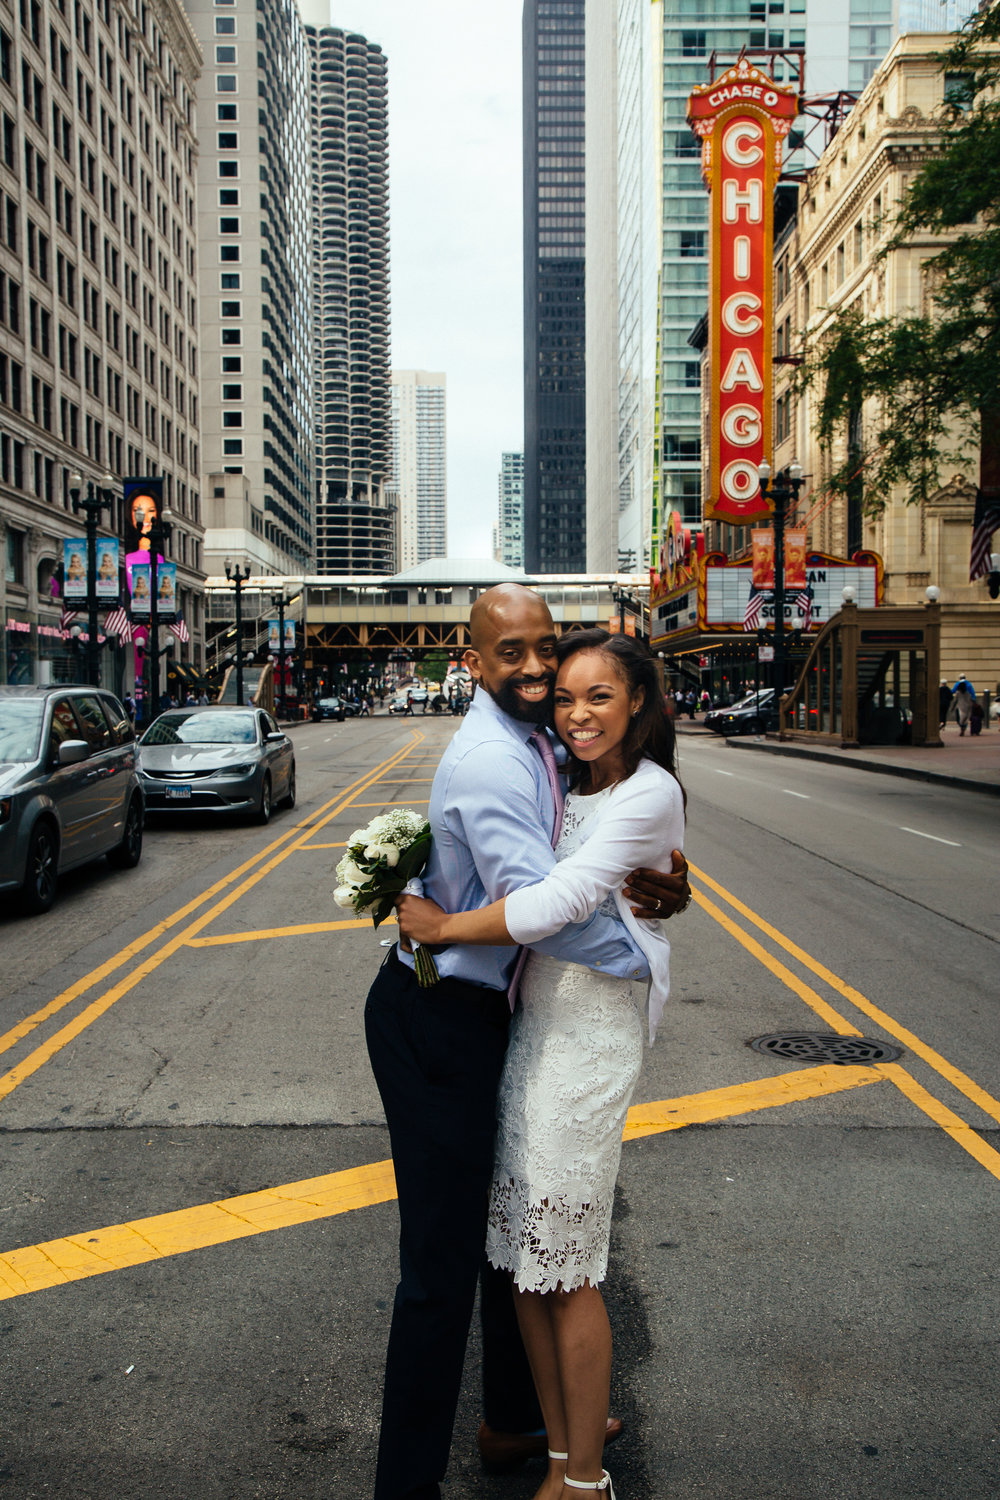 chicago_elopement_tony_brittany-13.jpg